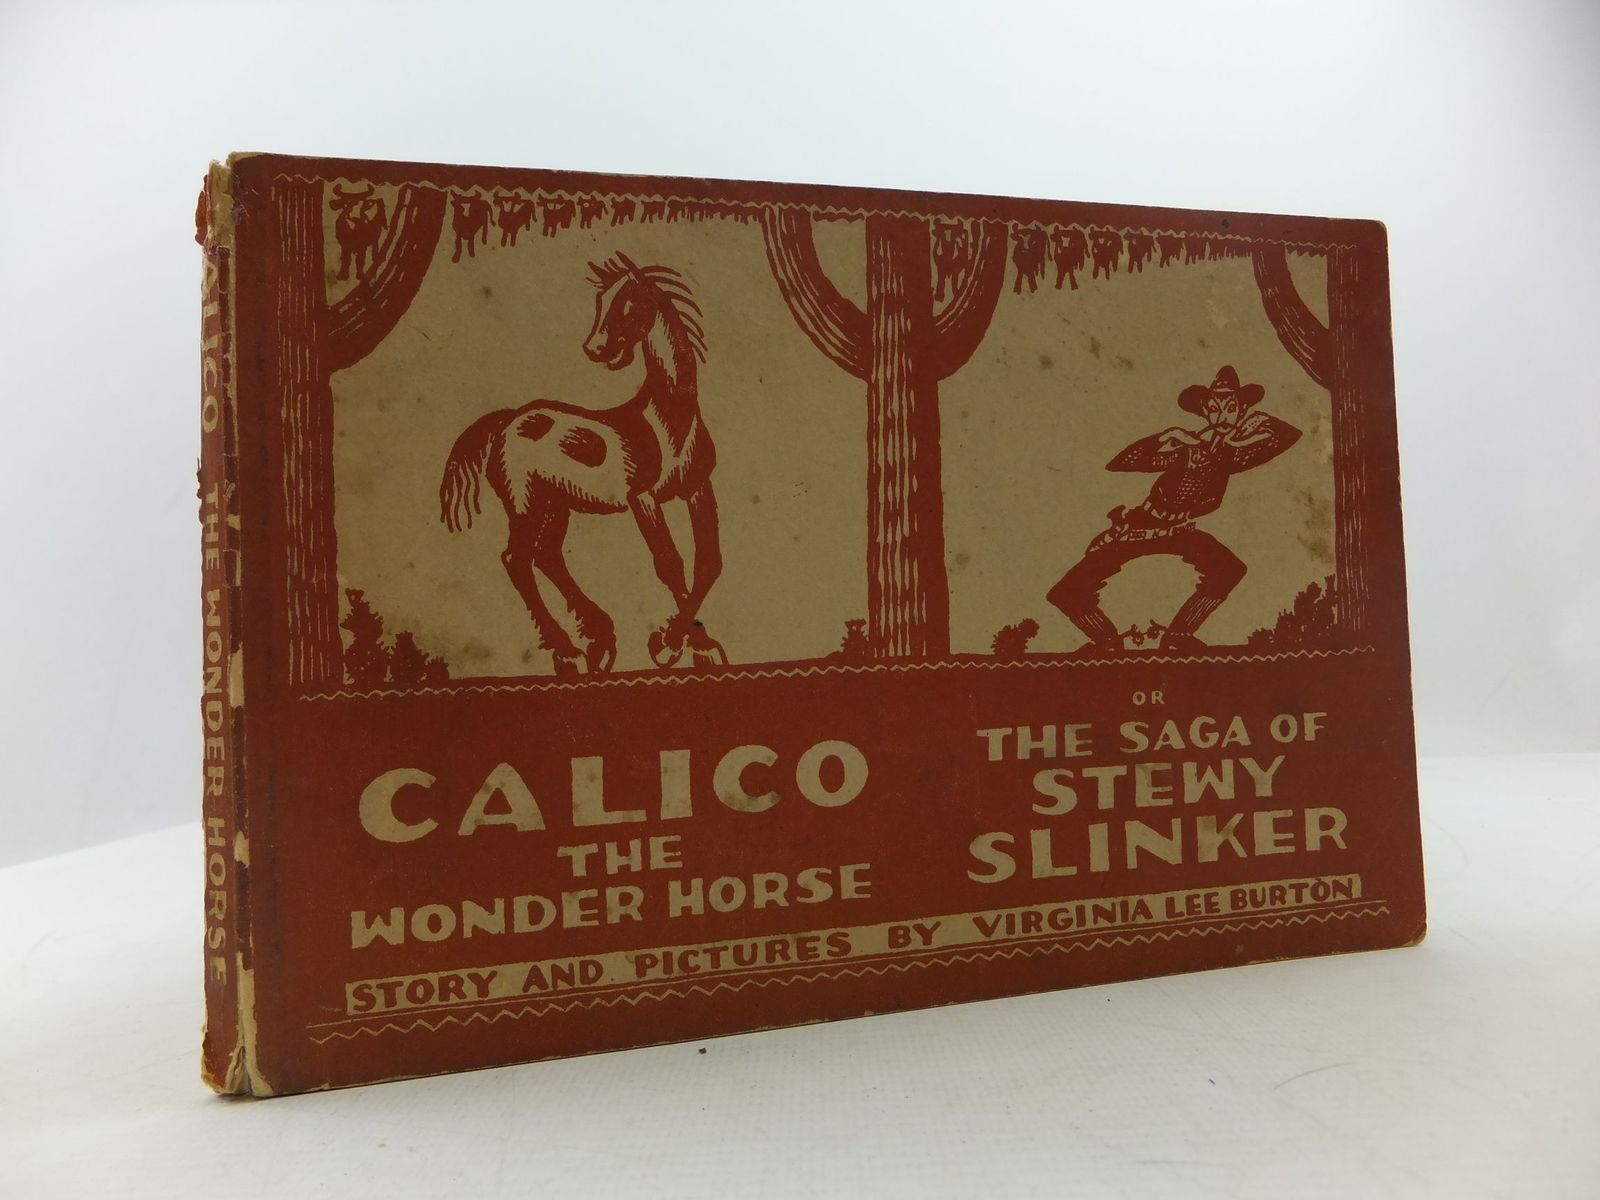 Photo of CALICO THE WONDER HORSE OR THE SAGA OF STEWY SLINKER written by Burton, Virginia Lee illustrated by Burton, Virginia Lee published by Faber & Faber Ltd. (STOCK CODE: 1709027)  for sale by Stella & Rose's Books